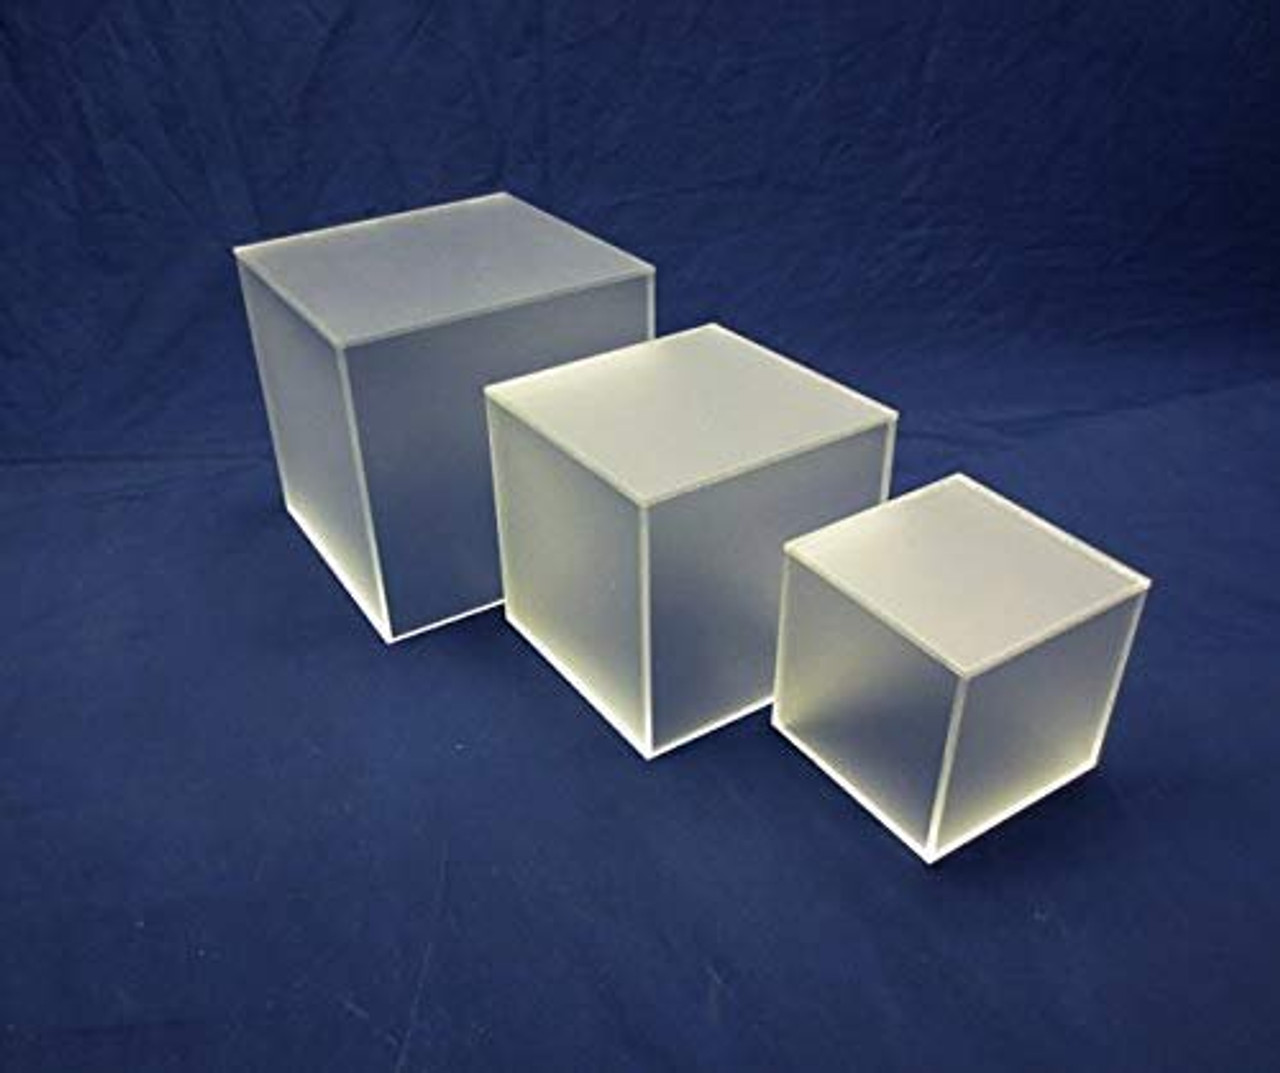 3 Piece Square Acrylic Cube Set, Frosted